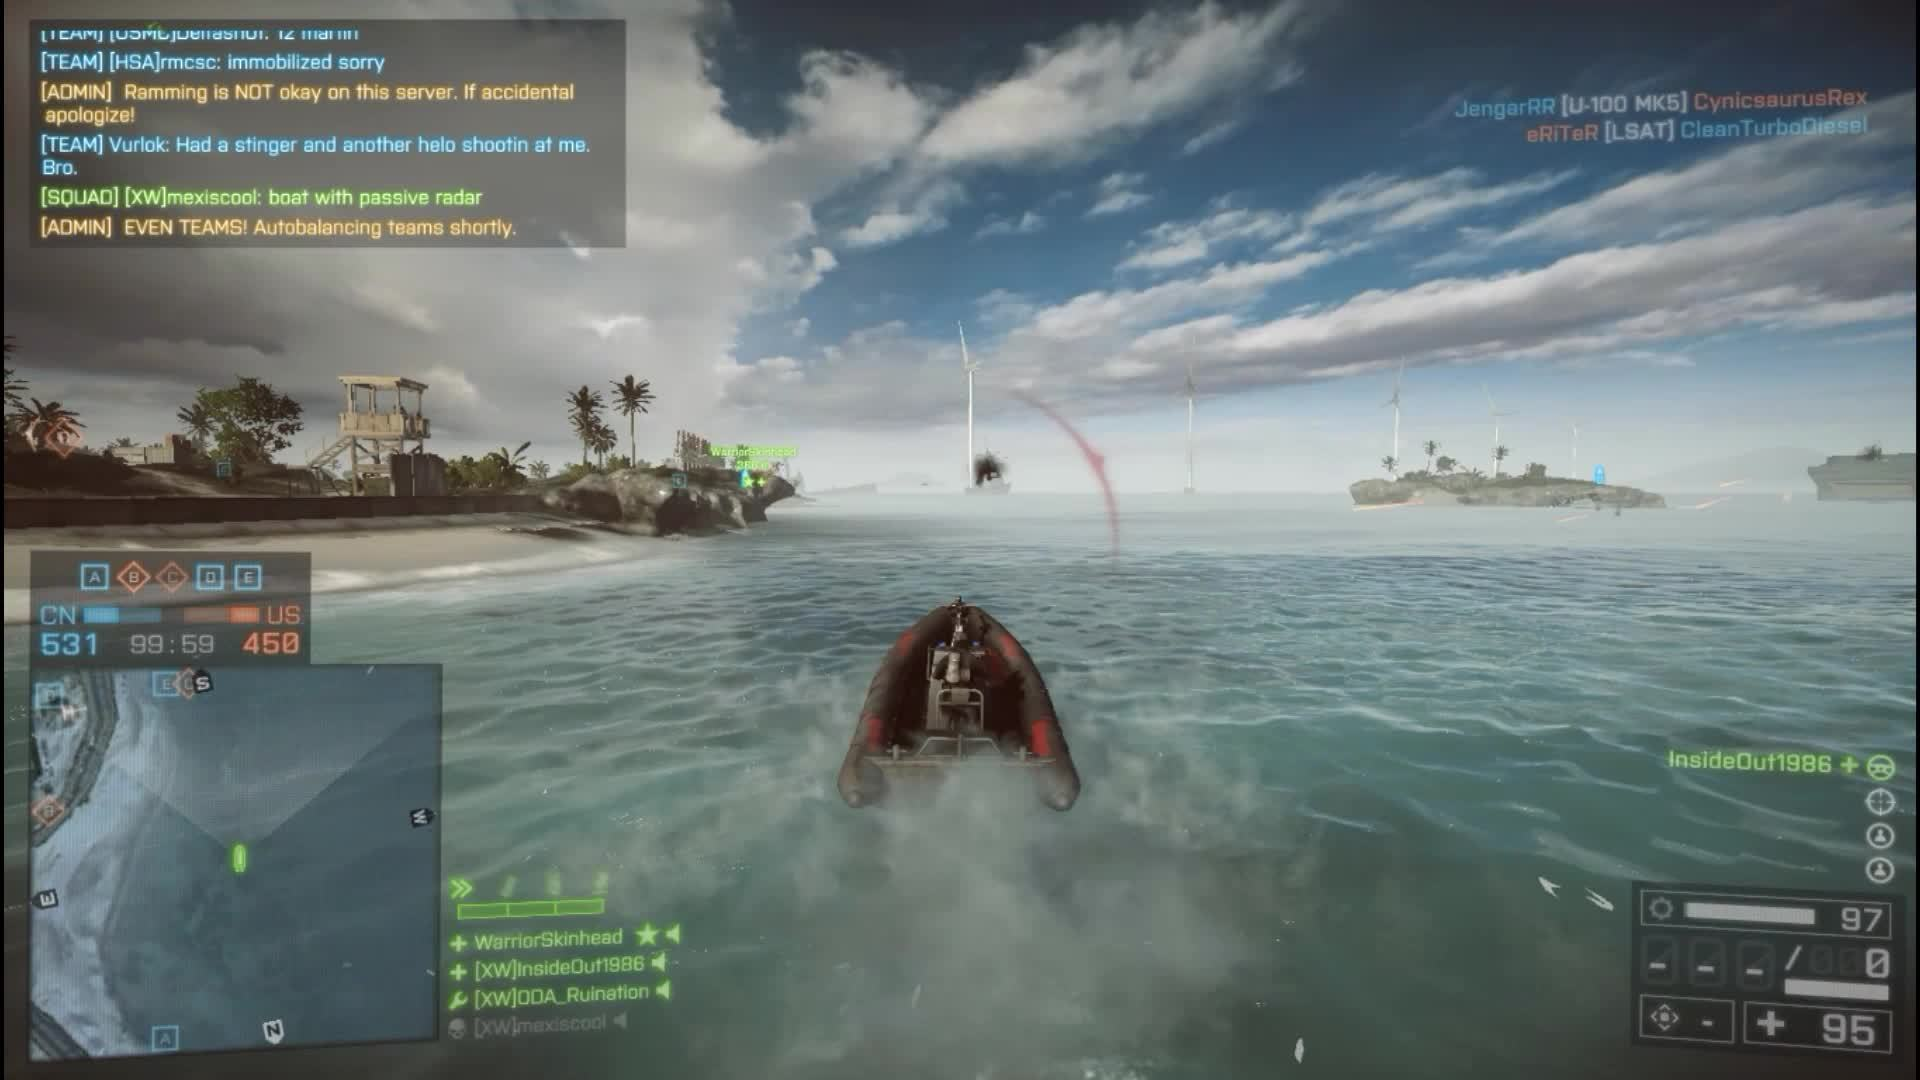 battlefield_4, A new type of Megalodon? (OC) (reddit) GIFs